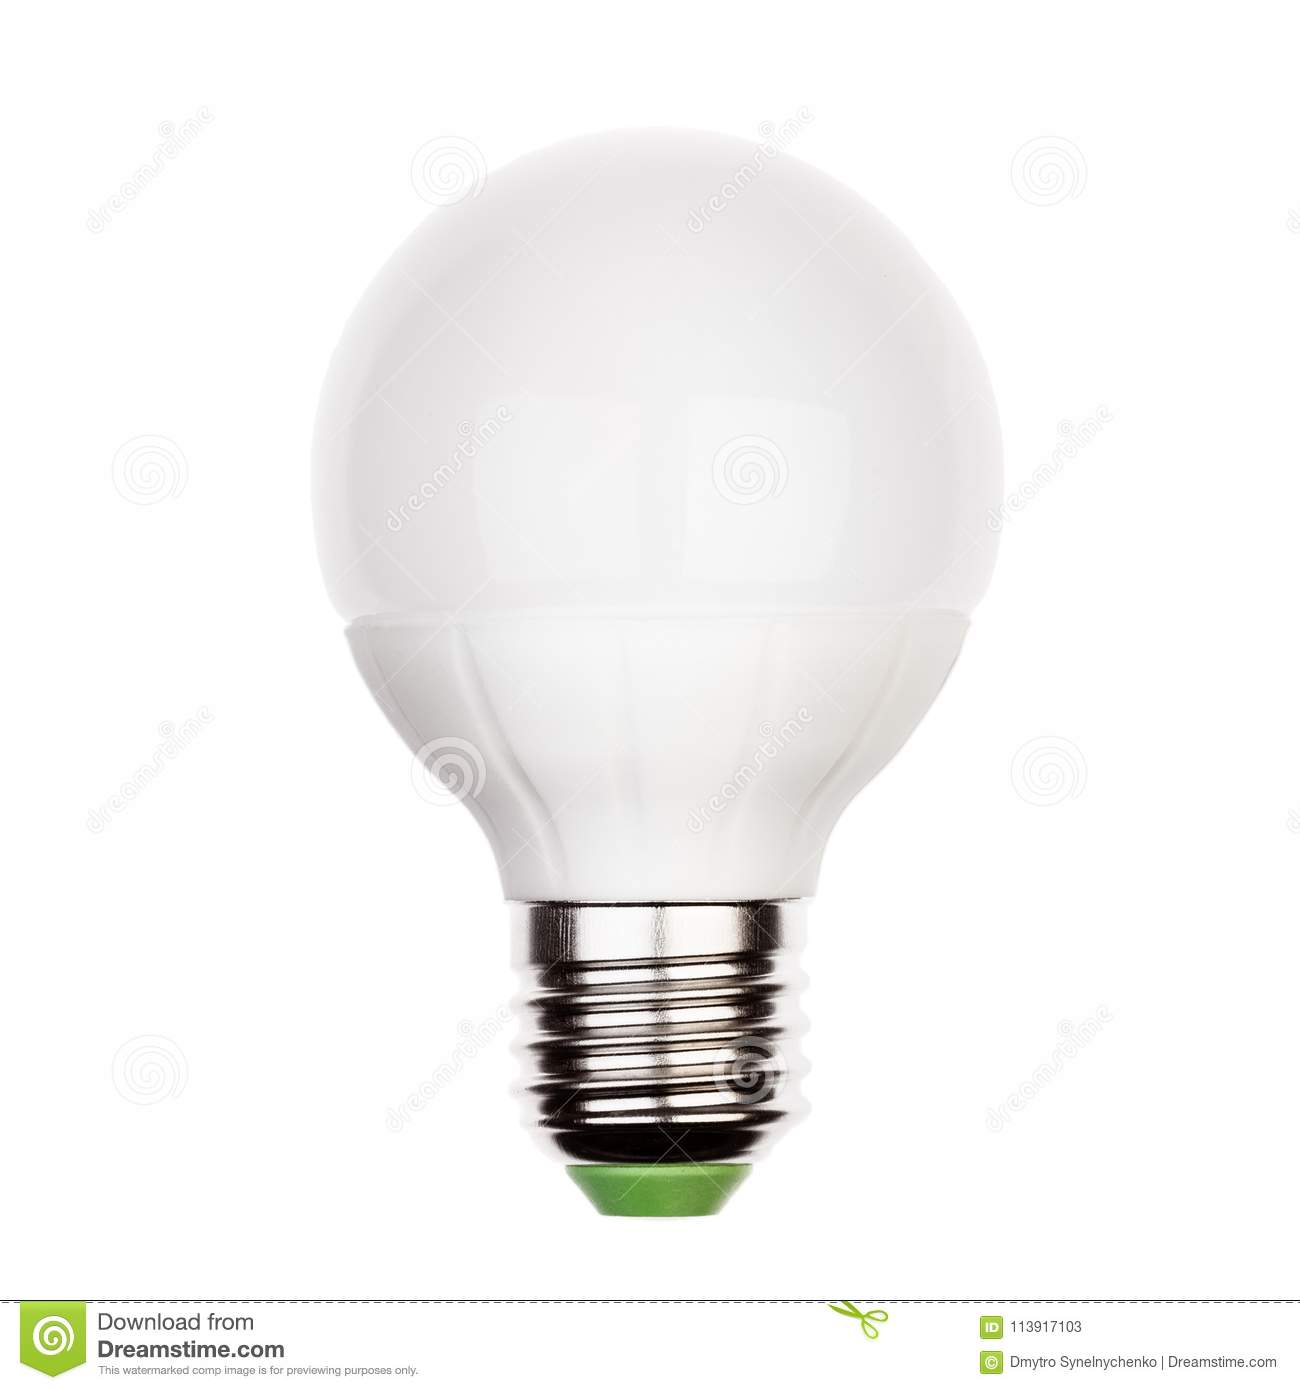 E27 Sockel Energy Saving Led Lamp With E27 Ceramic Socket Stock Image Image